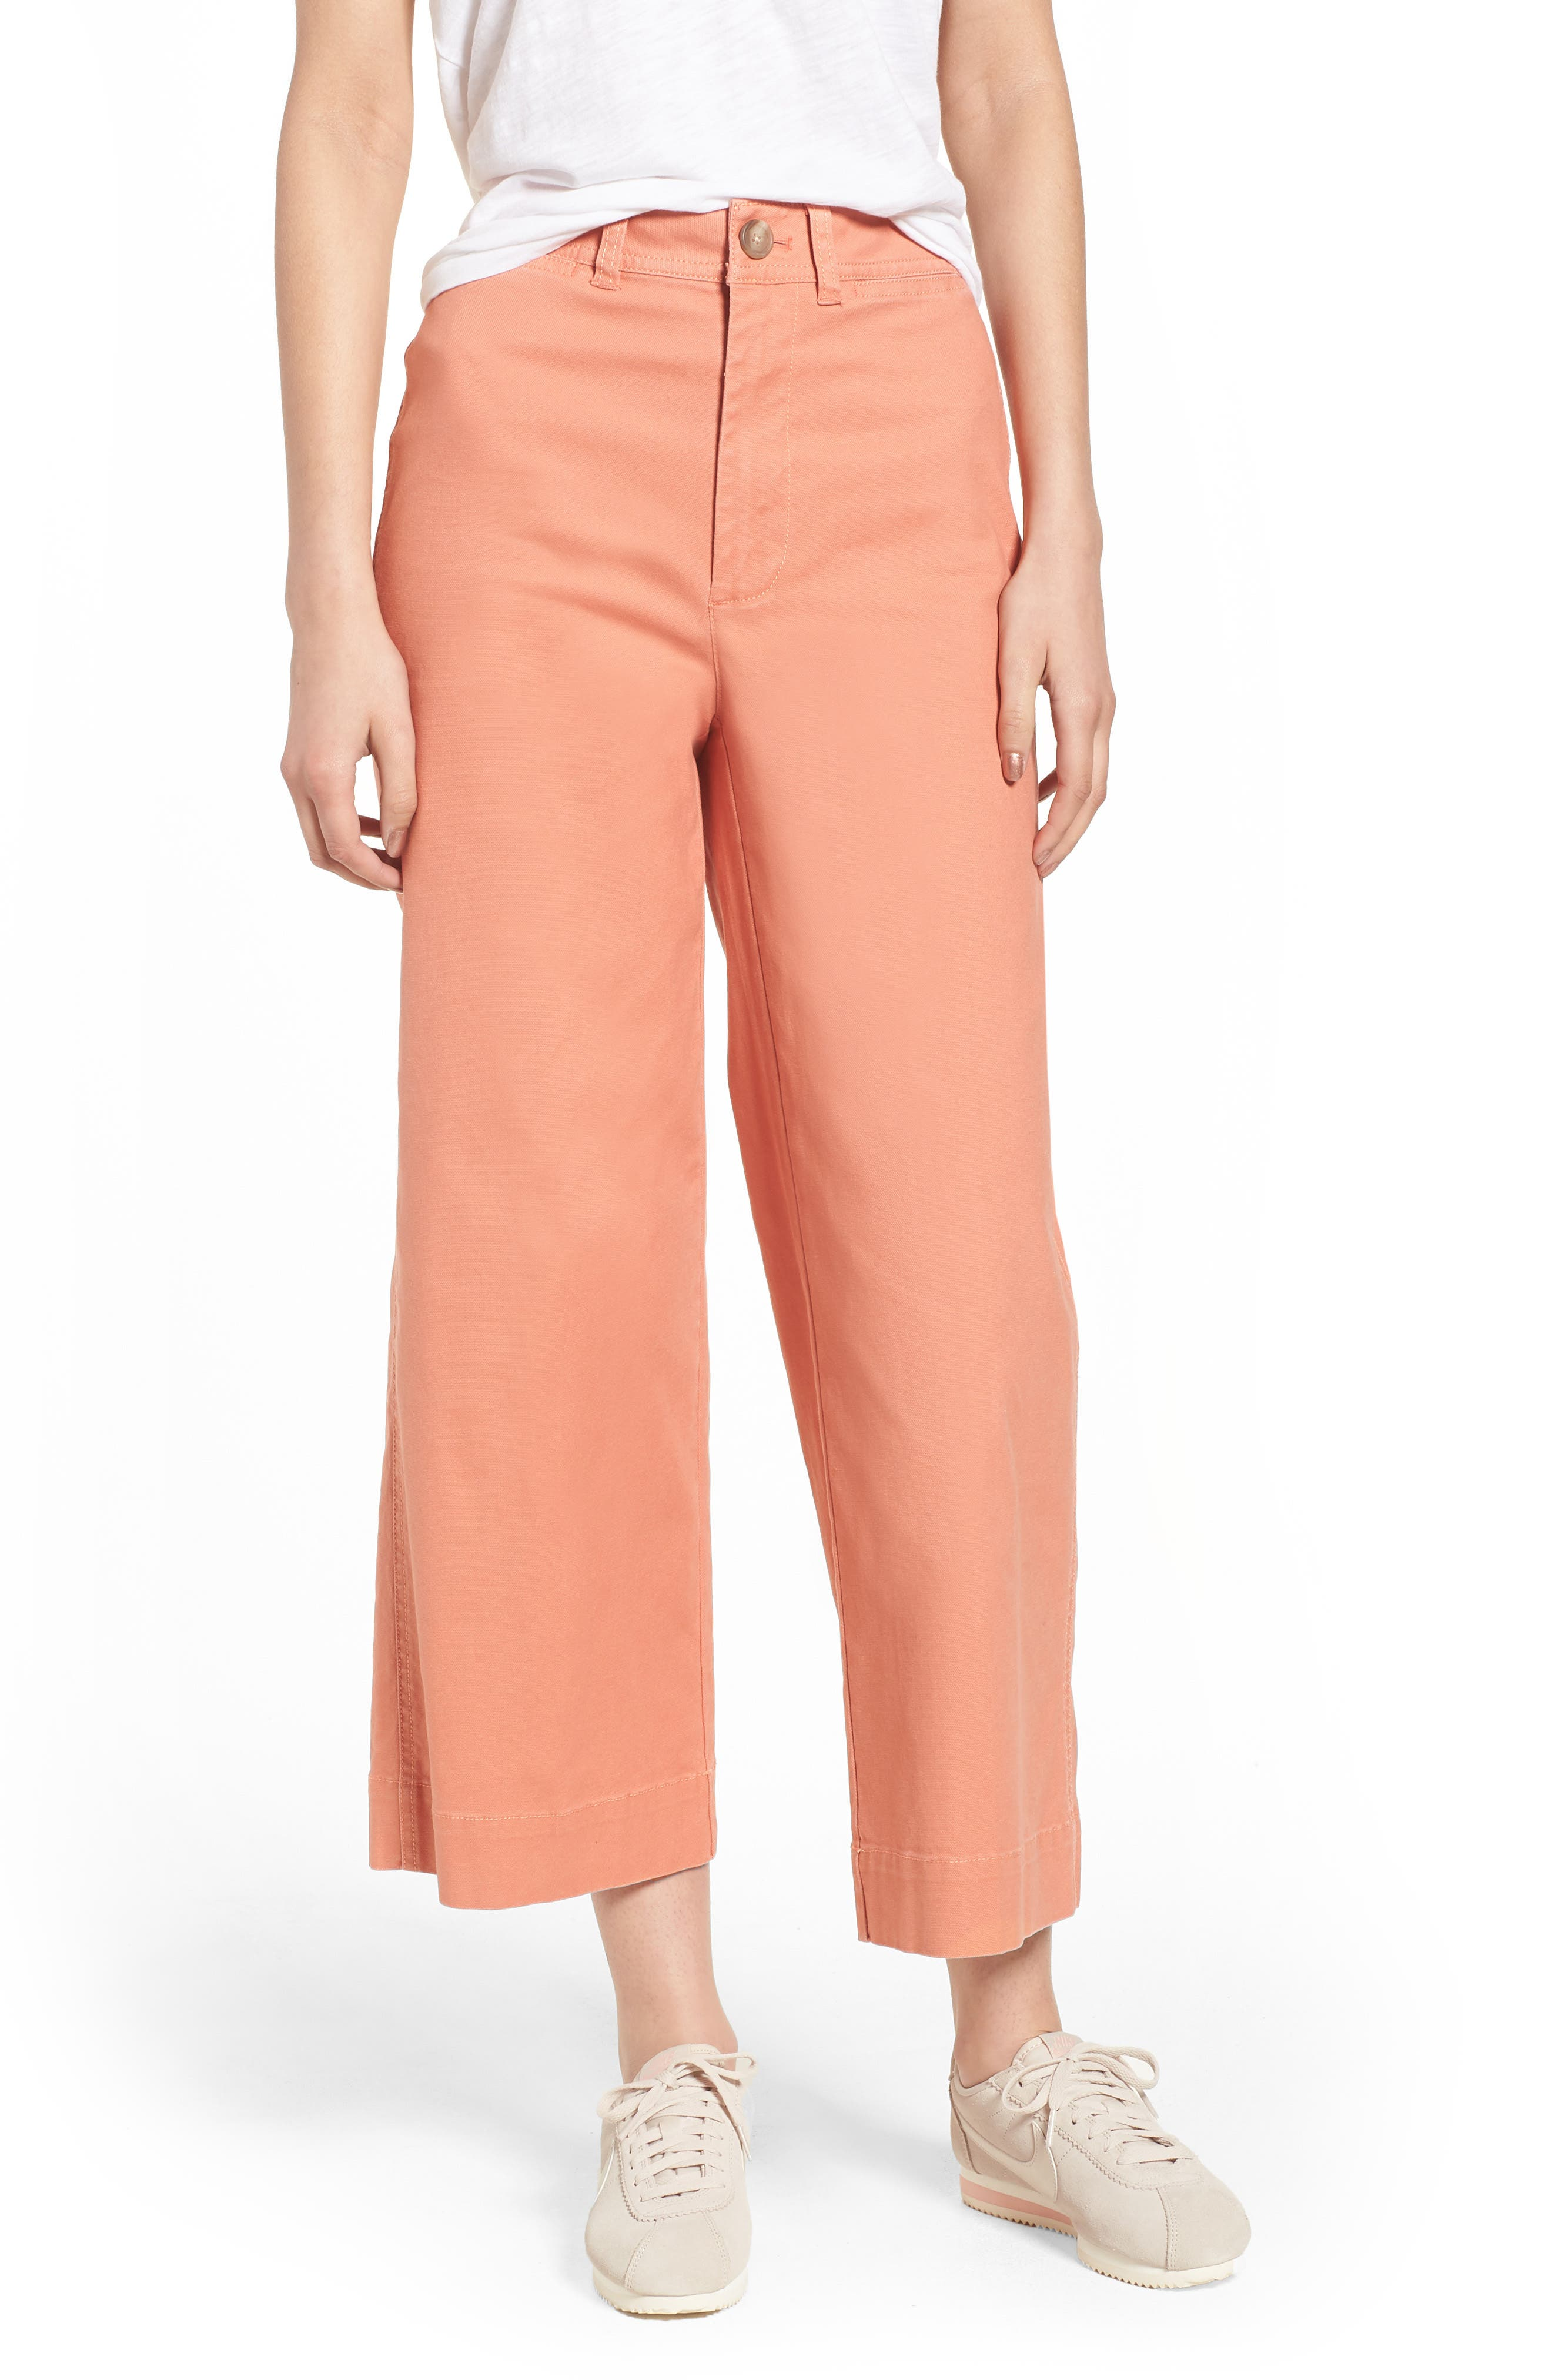 Emmett Crop Wide Leg Pants,                             Main thumbnail 1, color,                             Dried Coral